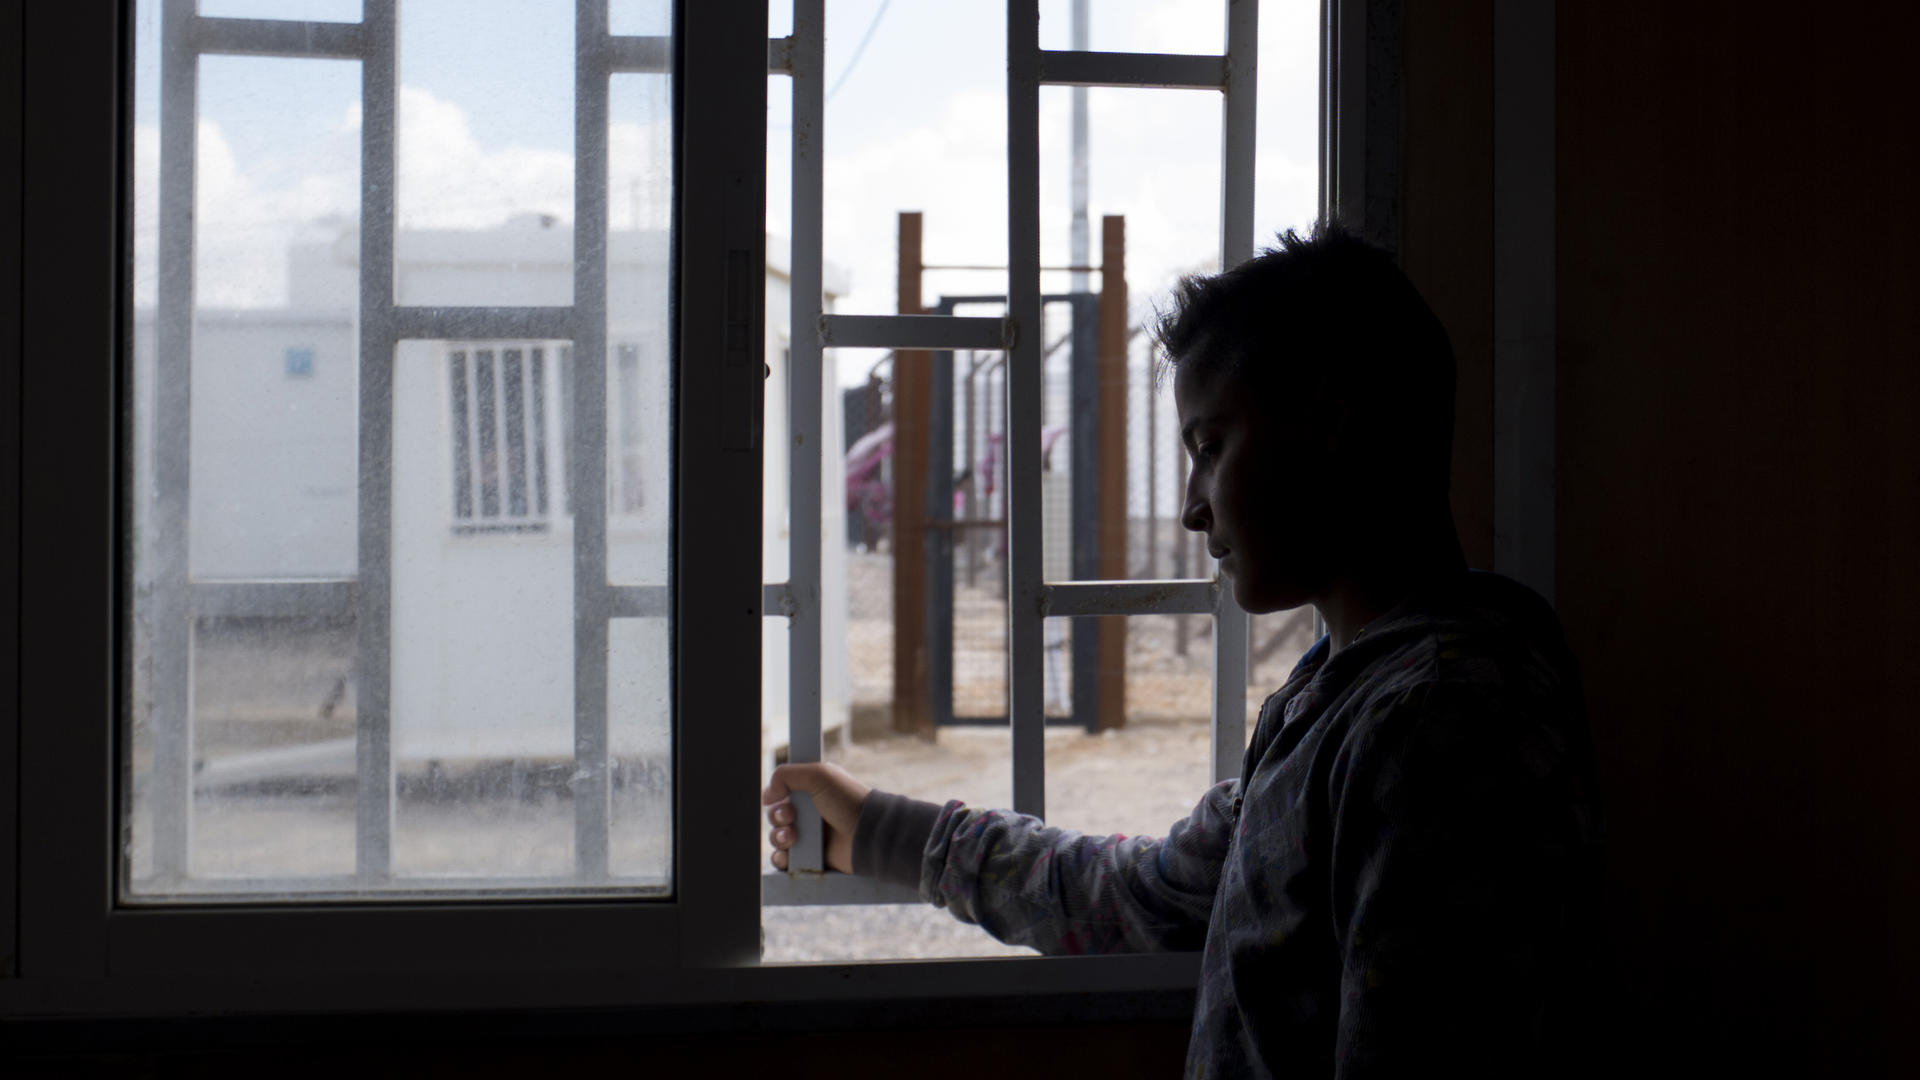 Fifteen-year-old Samir* has been waiting for four months in Jordan's Azraq refugee camp to be reunited with his family.